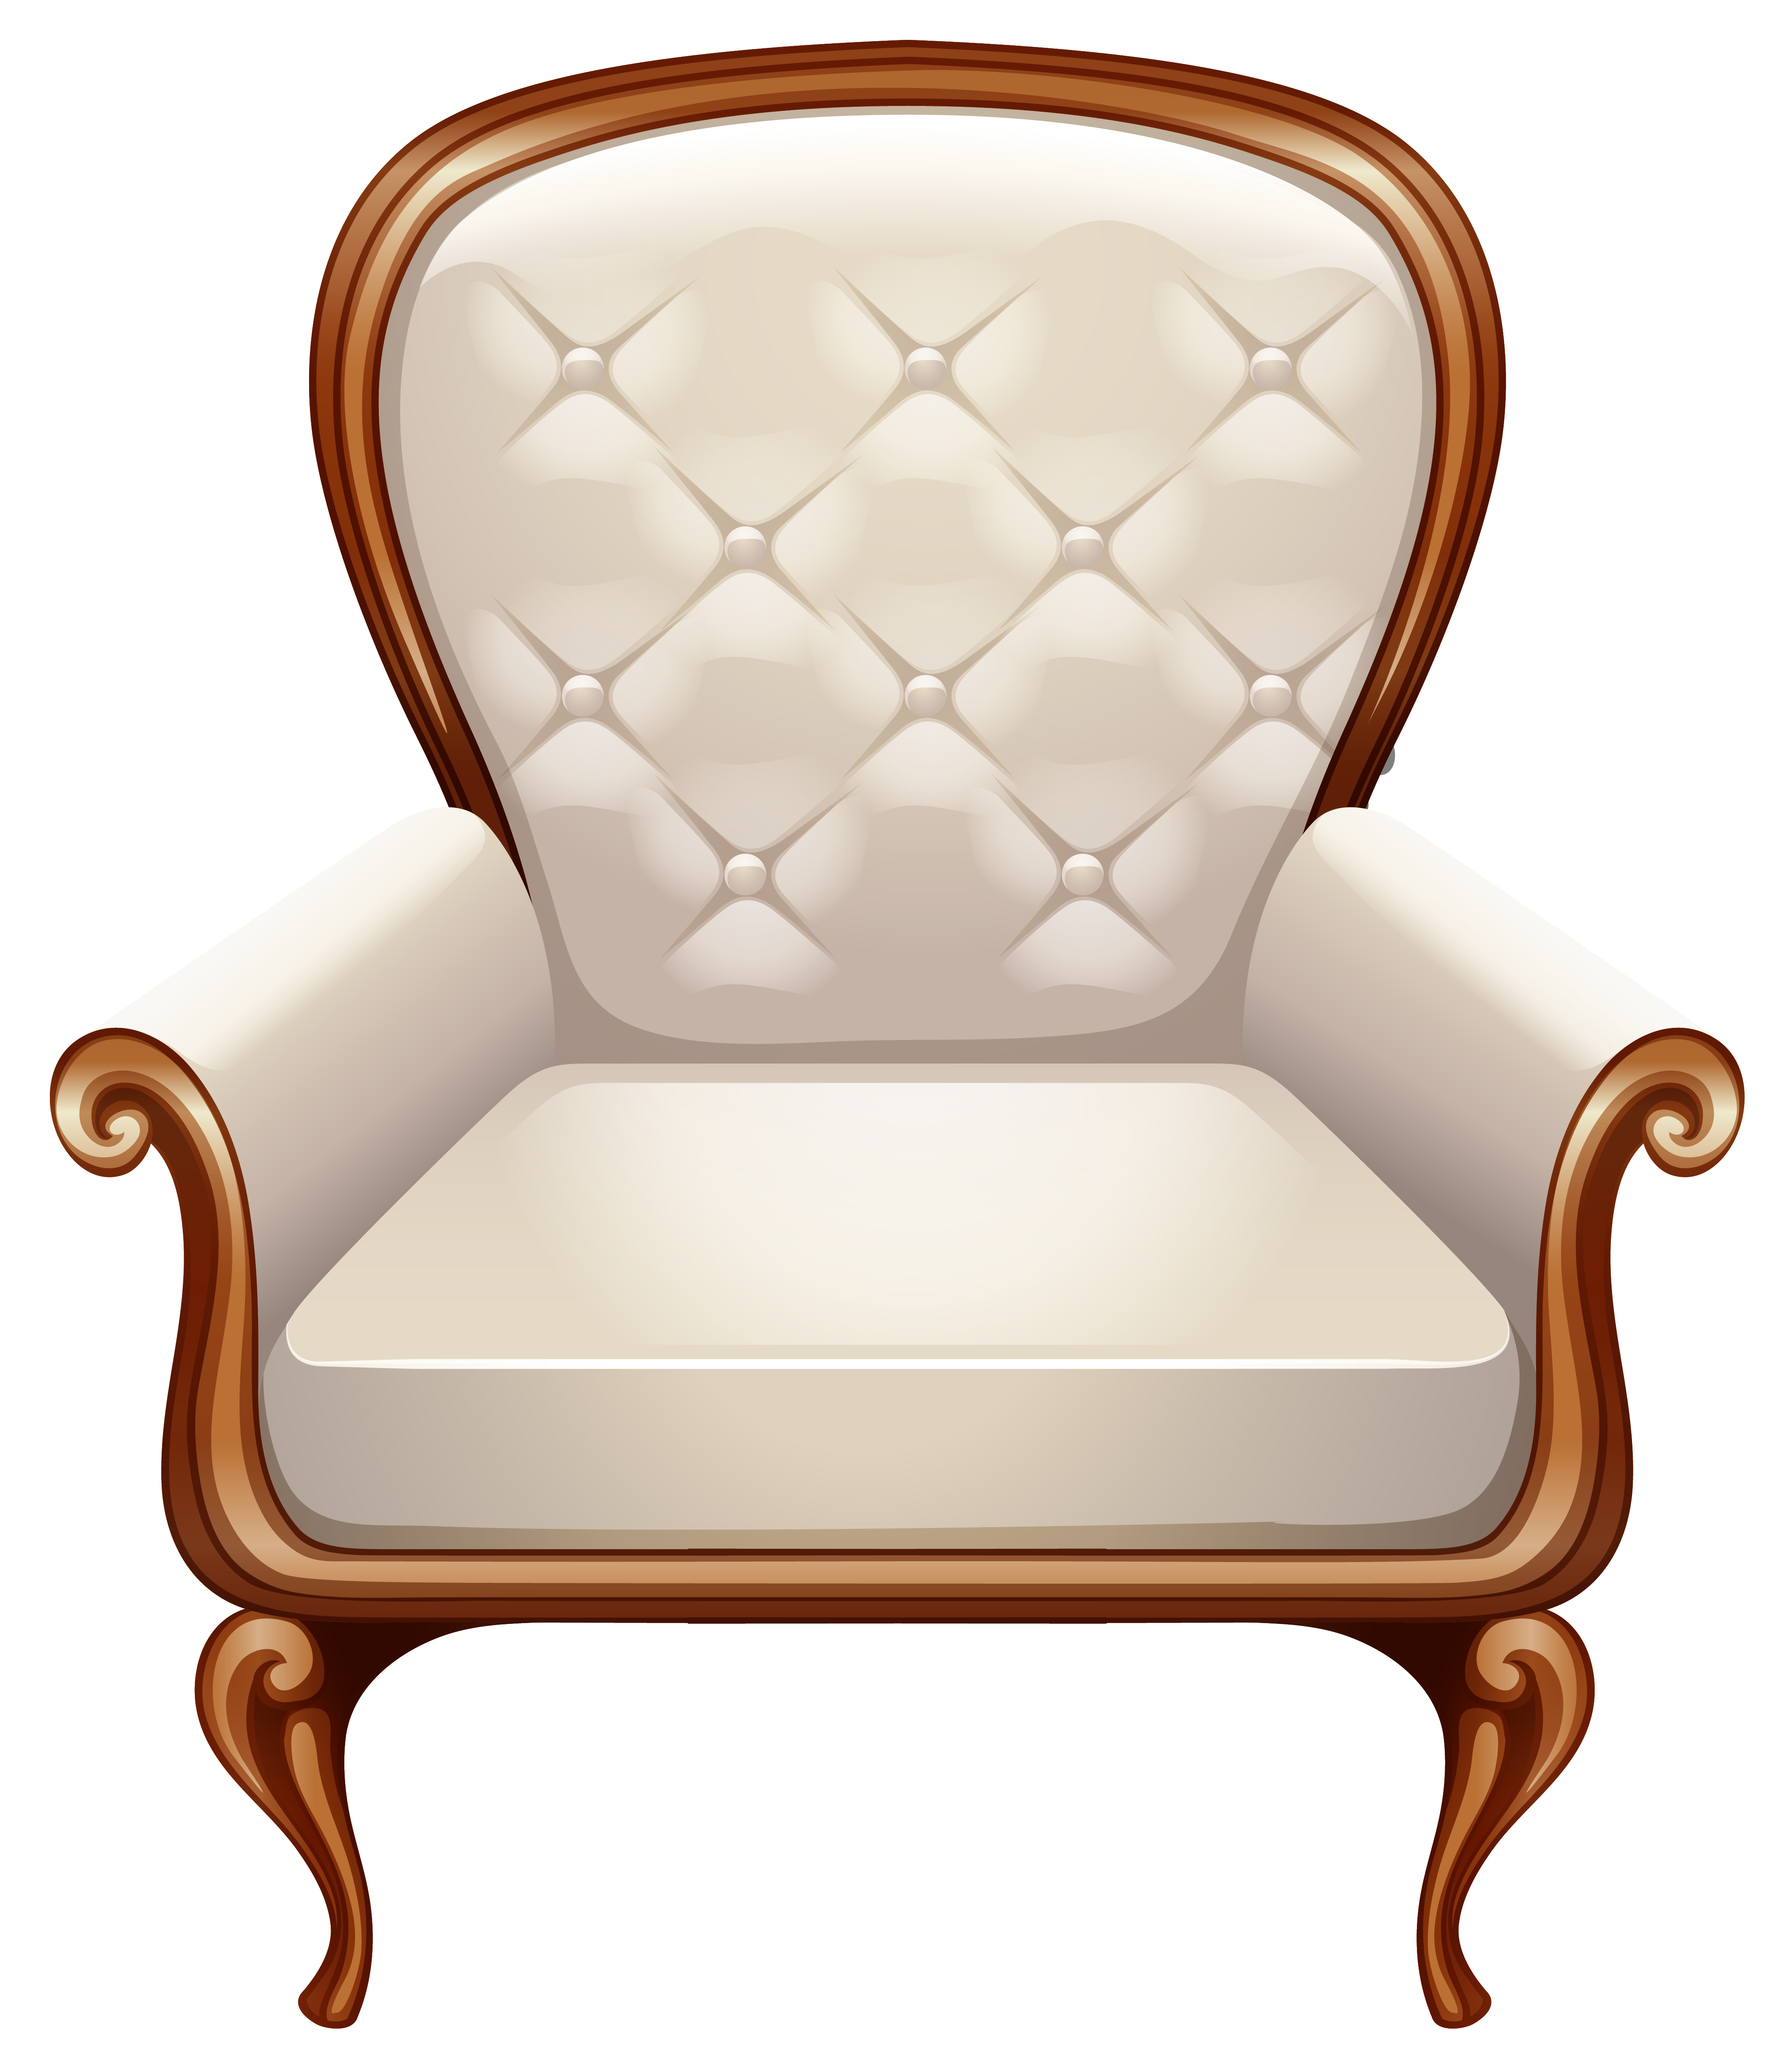 Chair Png Image #40531 - Chair, Transparent background PNG HD thumbnail